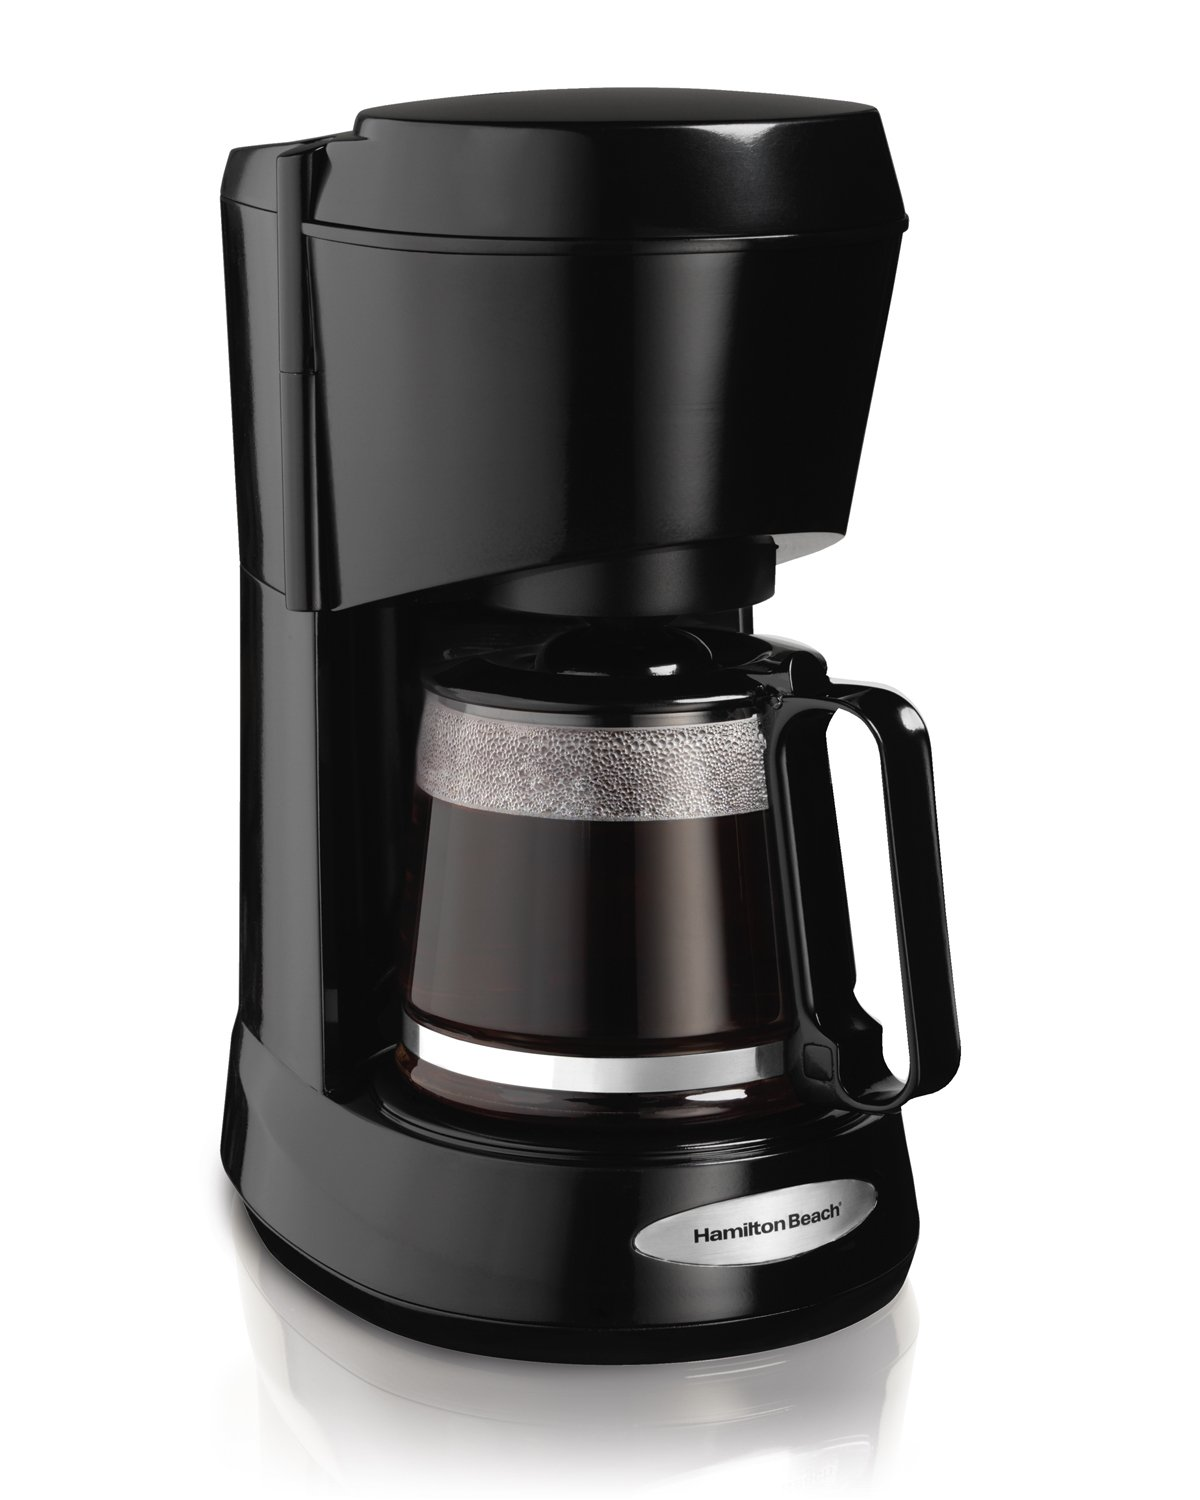 Glass Thermos Coffee Maker : Hamilton Beach Coffee Maker with Glass Carafe 5-Cup (48136) Black Chickadee Solutions